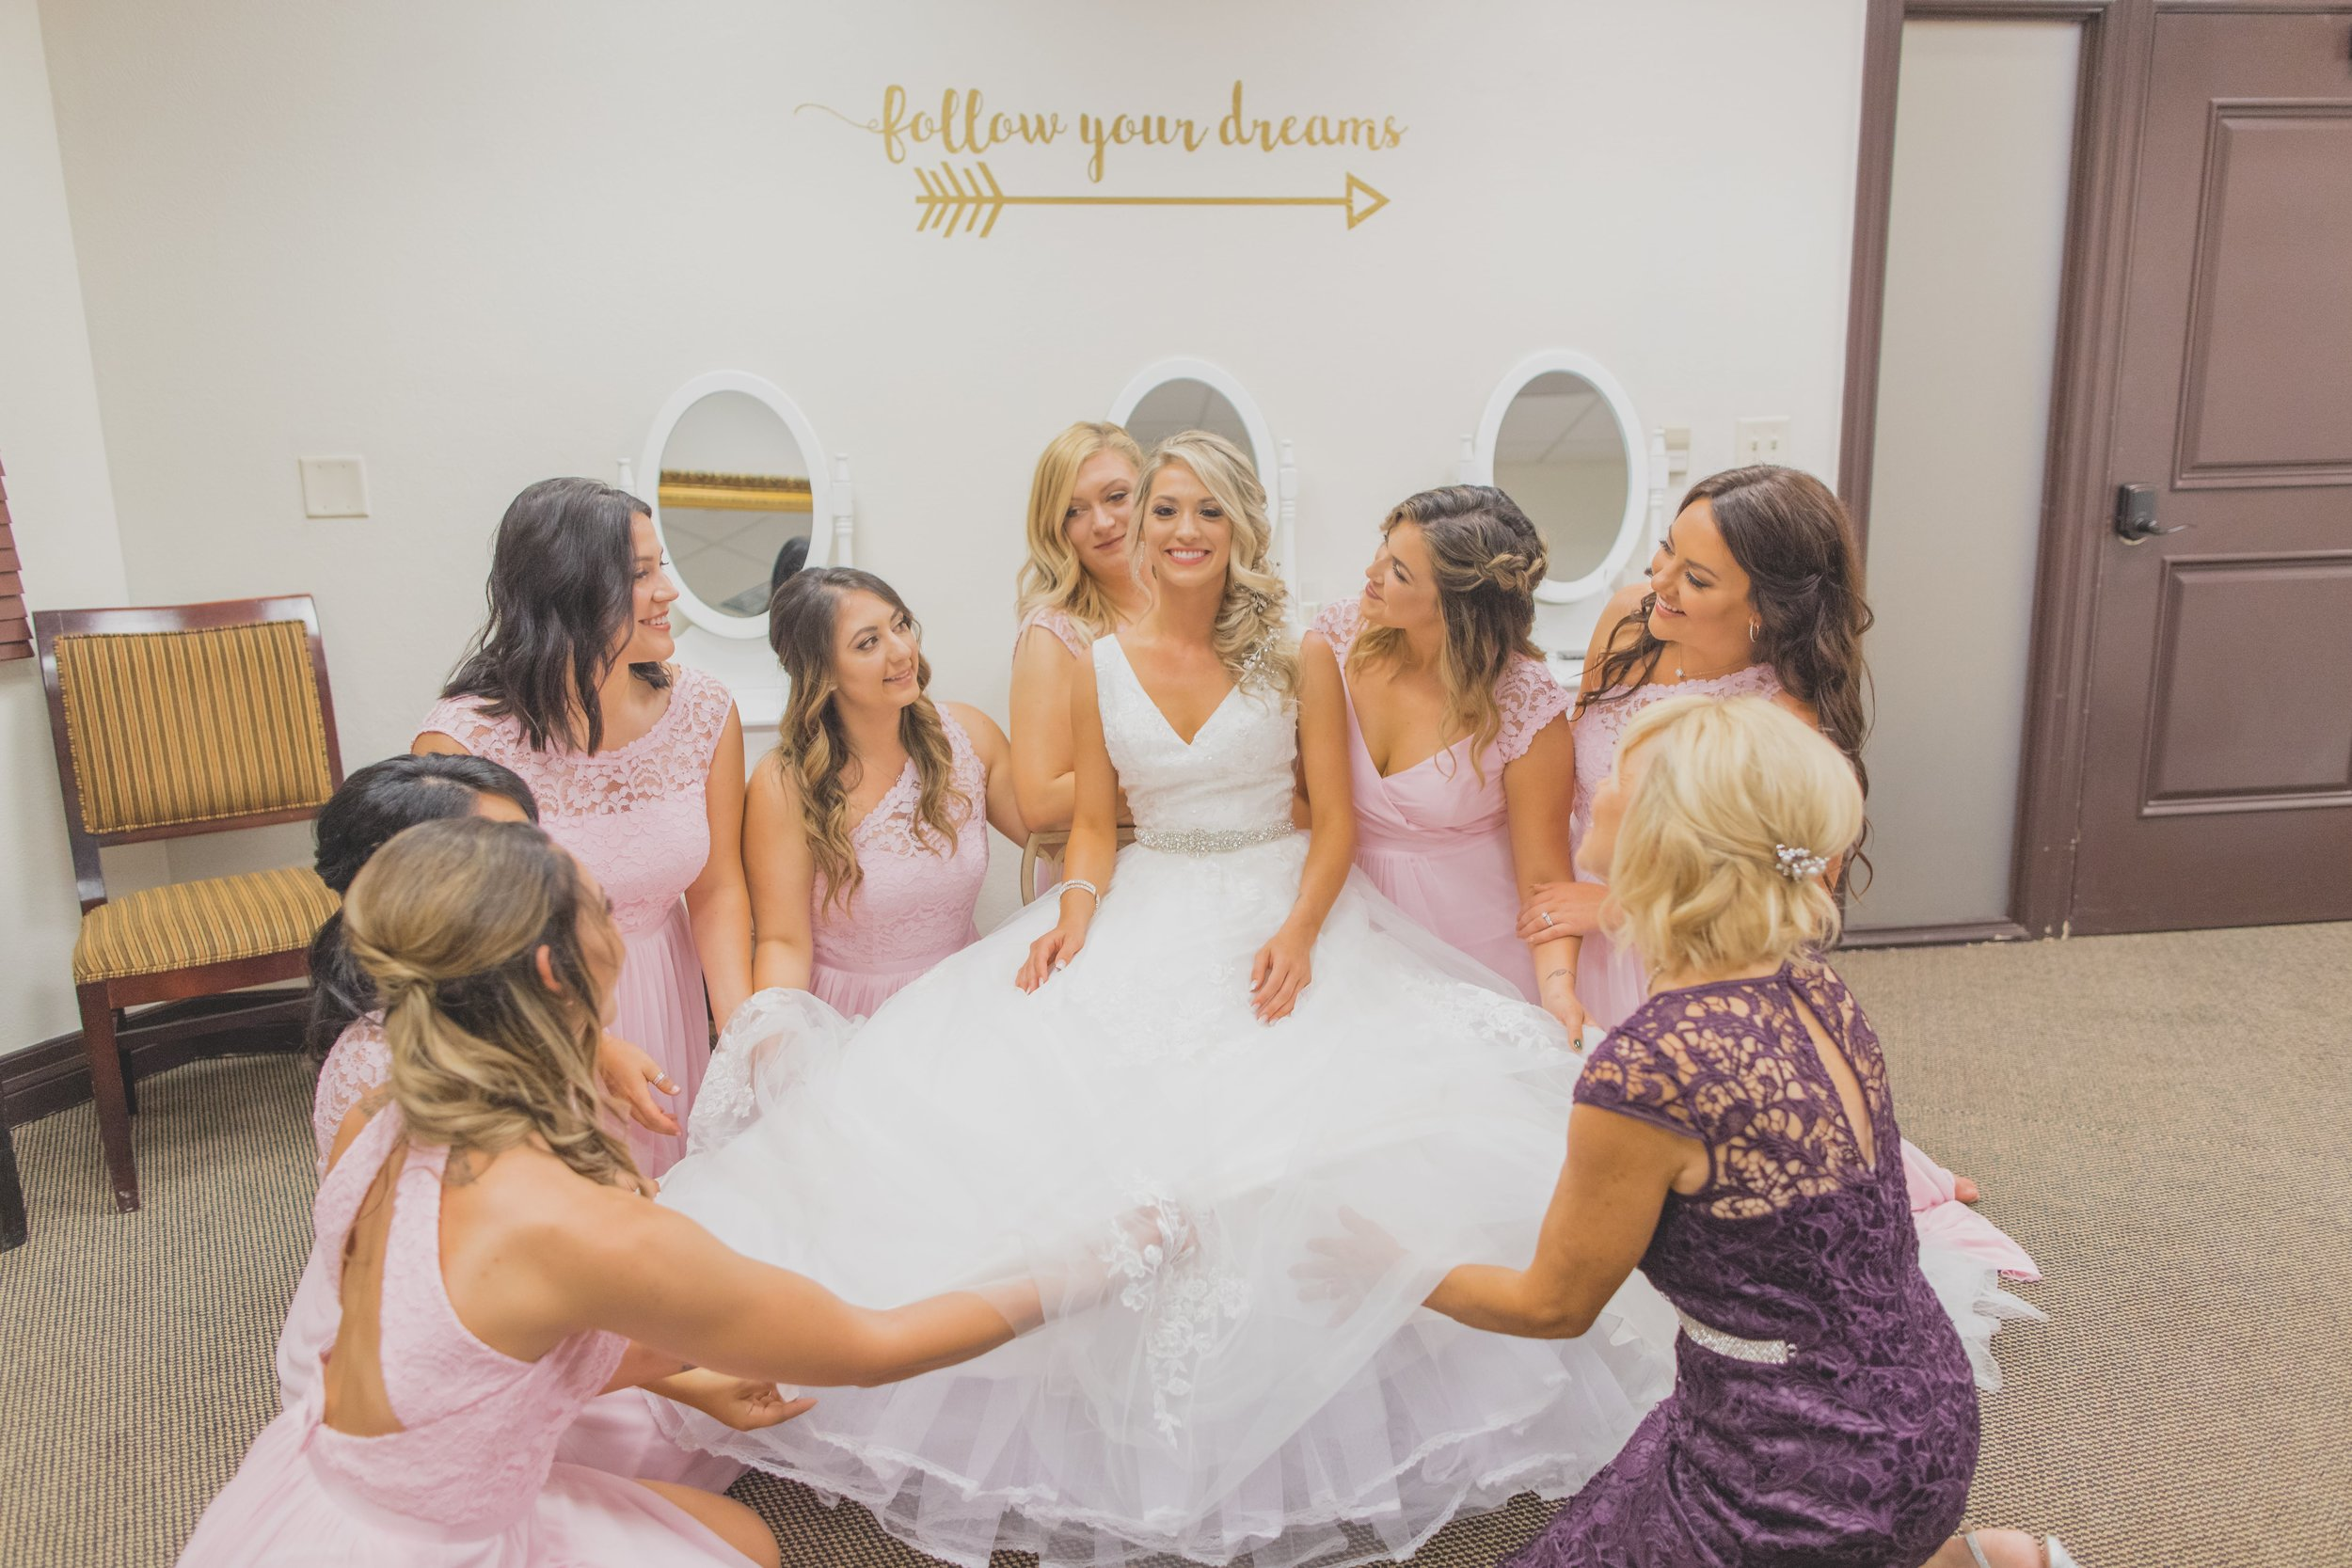 wedding dress shopping 101 - tips for finding the perfect dress - Bride in her wedding dress surrounded by her bridesmaids.